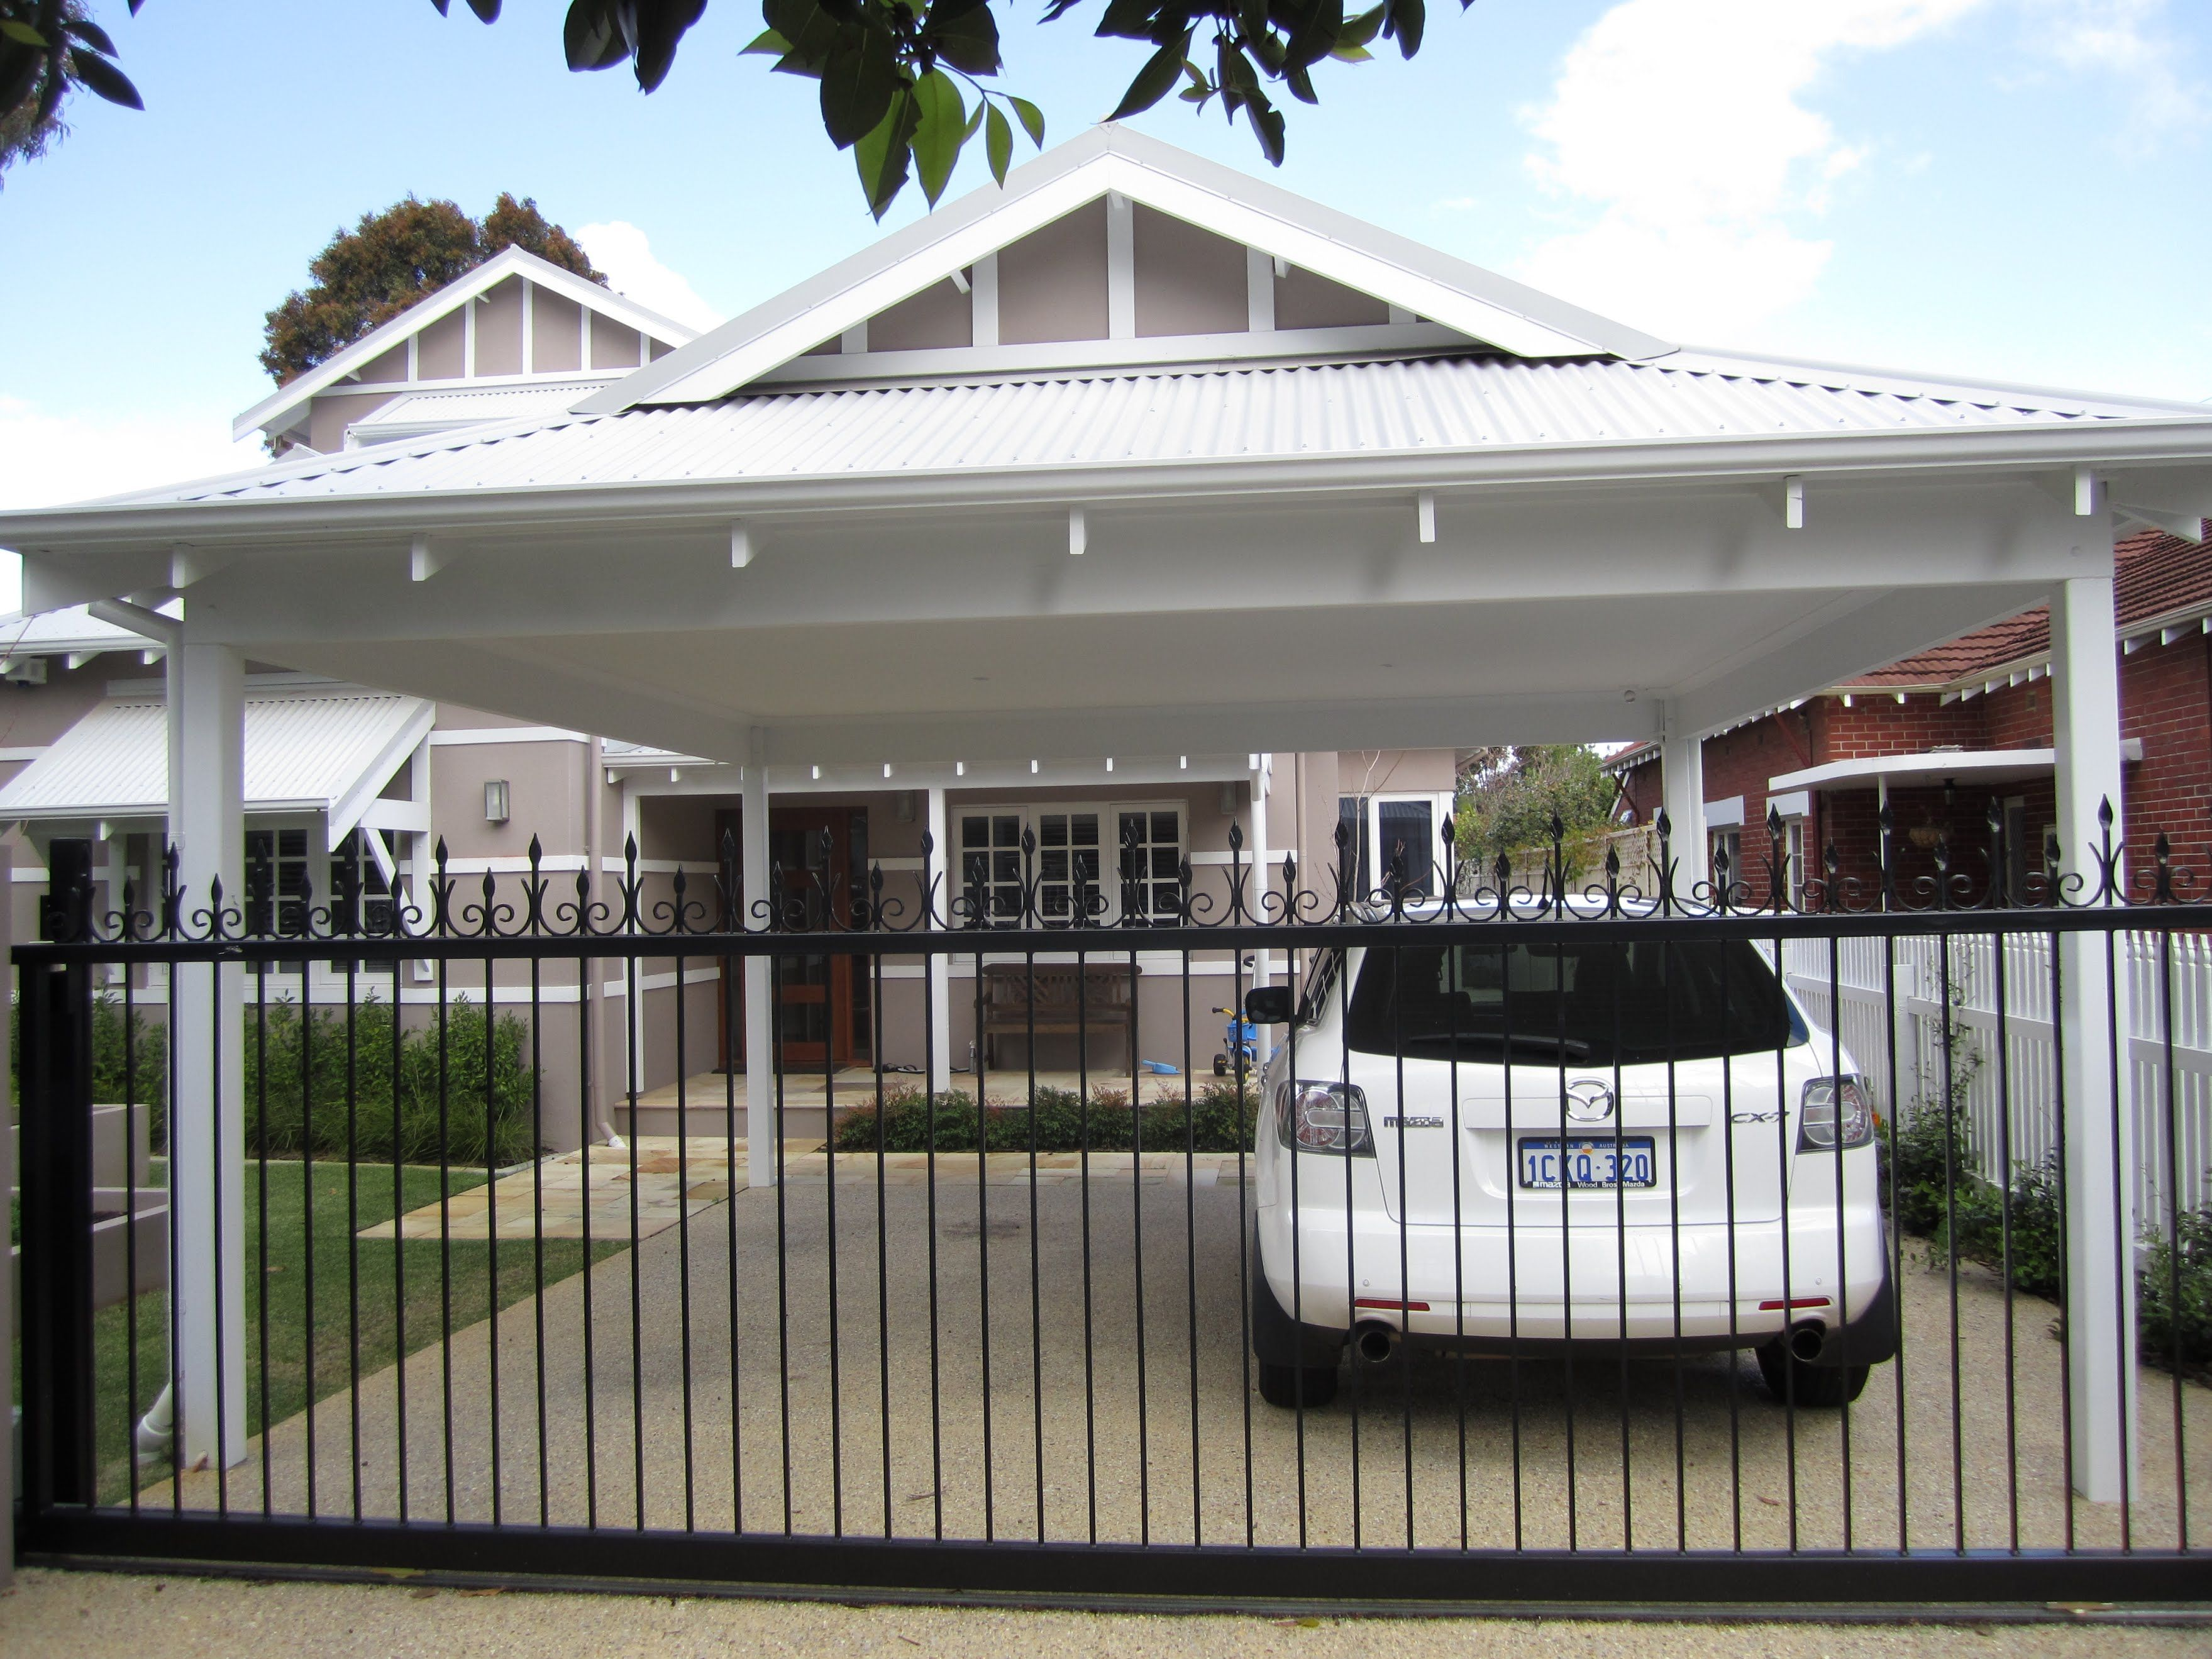 Specialist Carport builders to match your existing